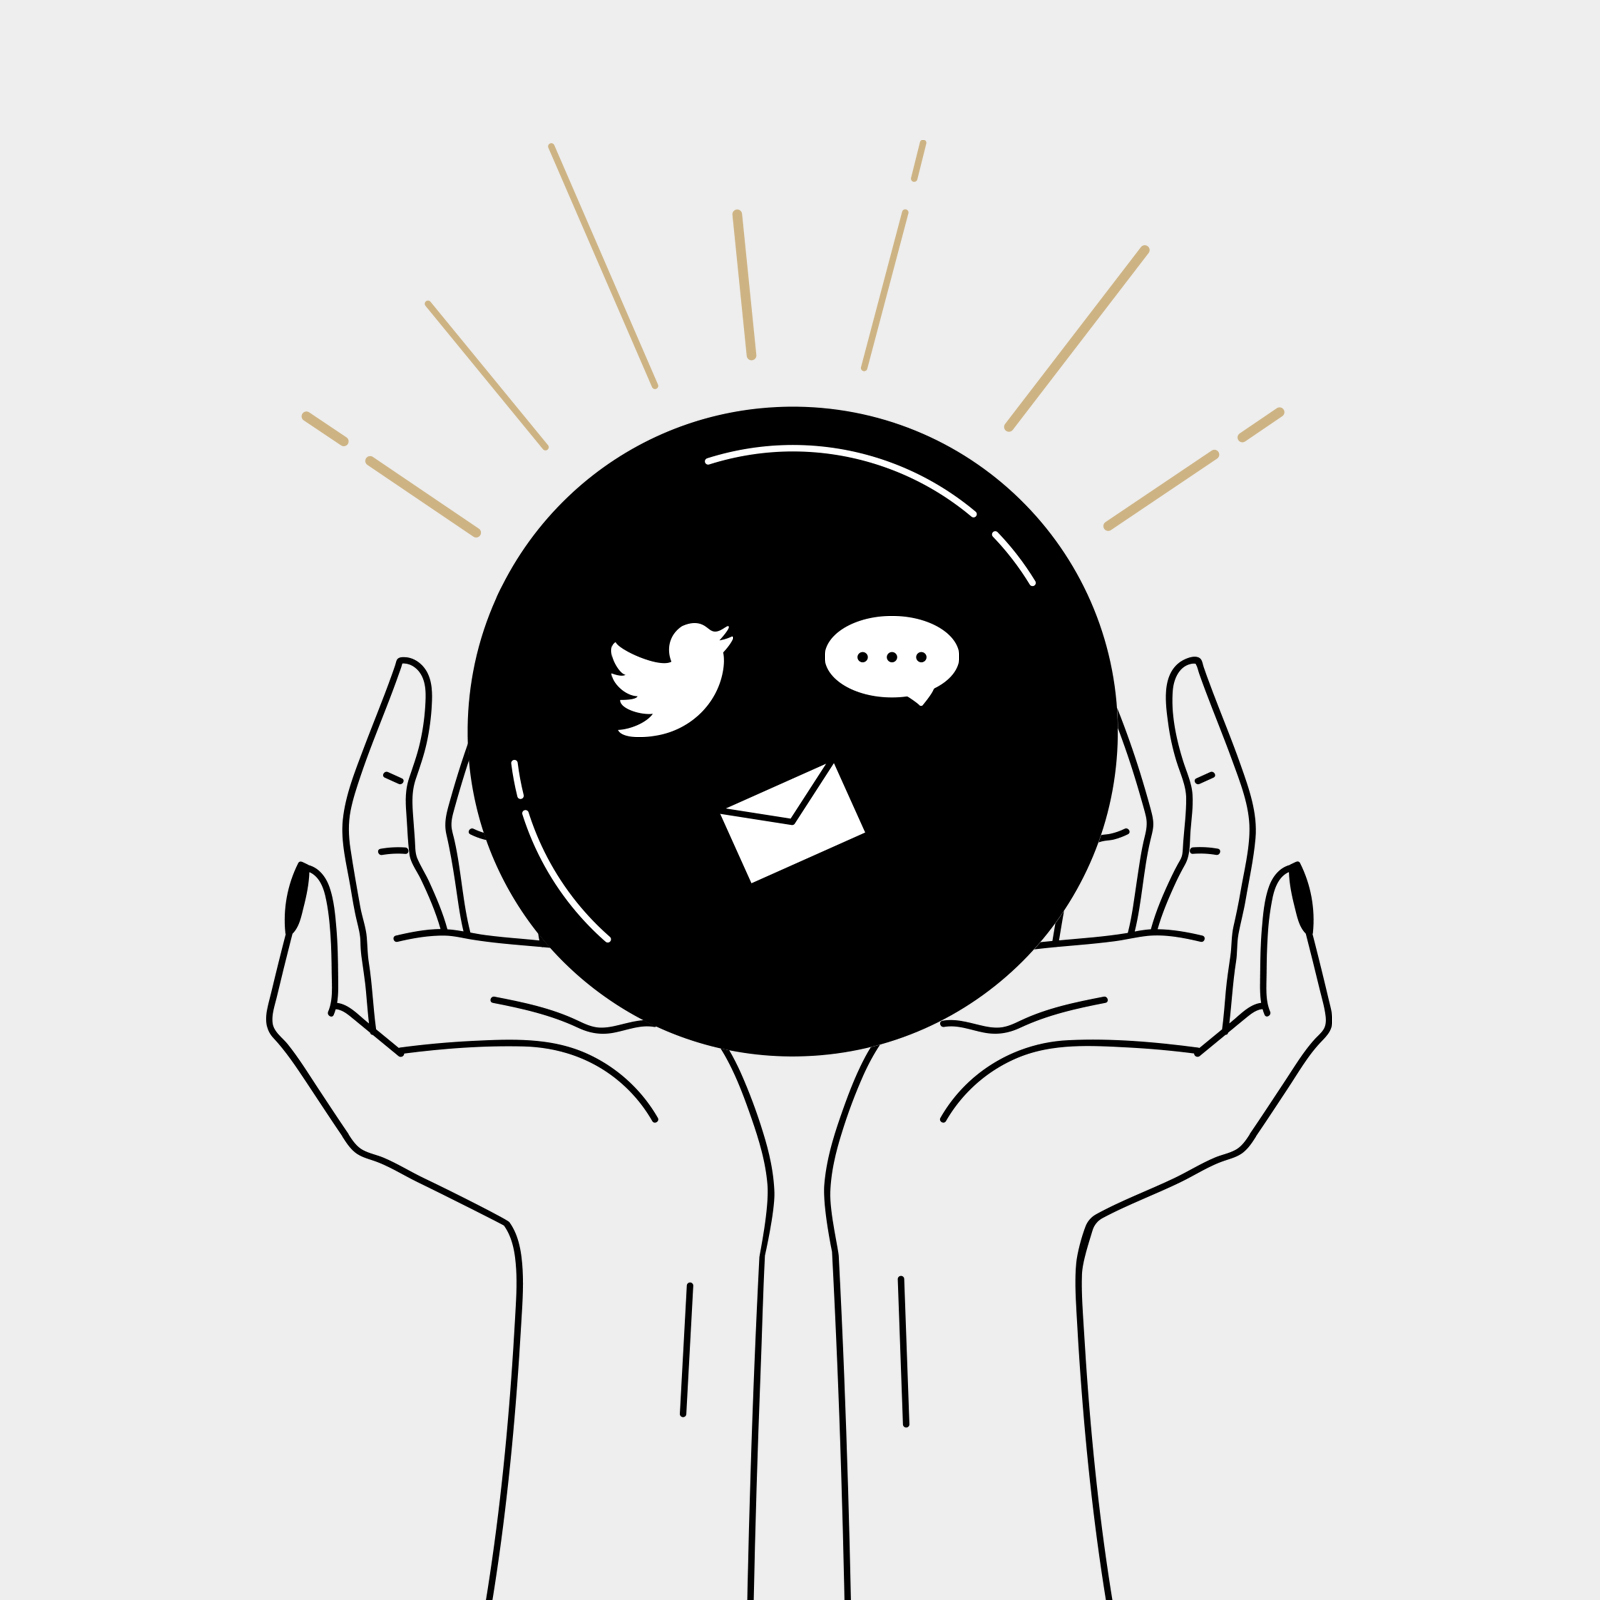 Illustration of hands holding a black orb containing icons for social media, messaging, and email